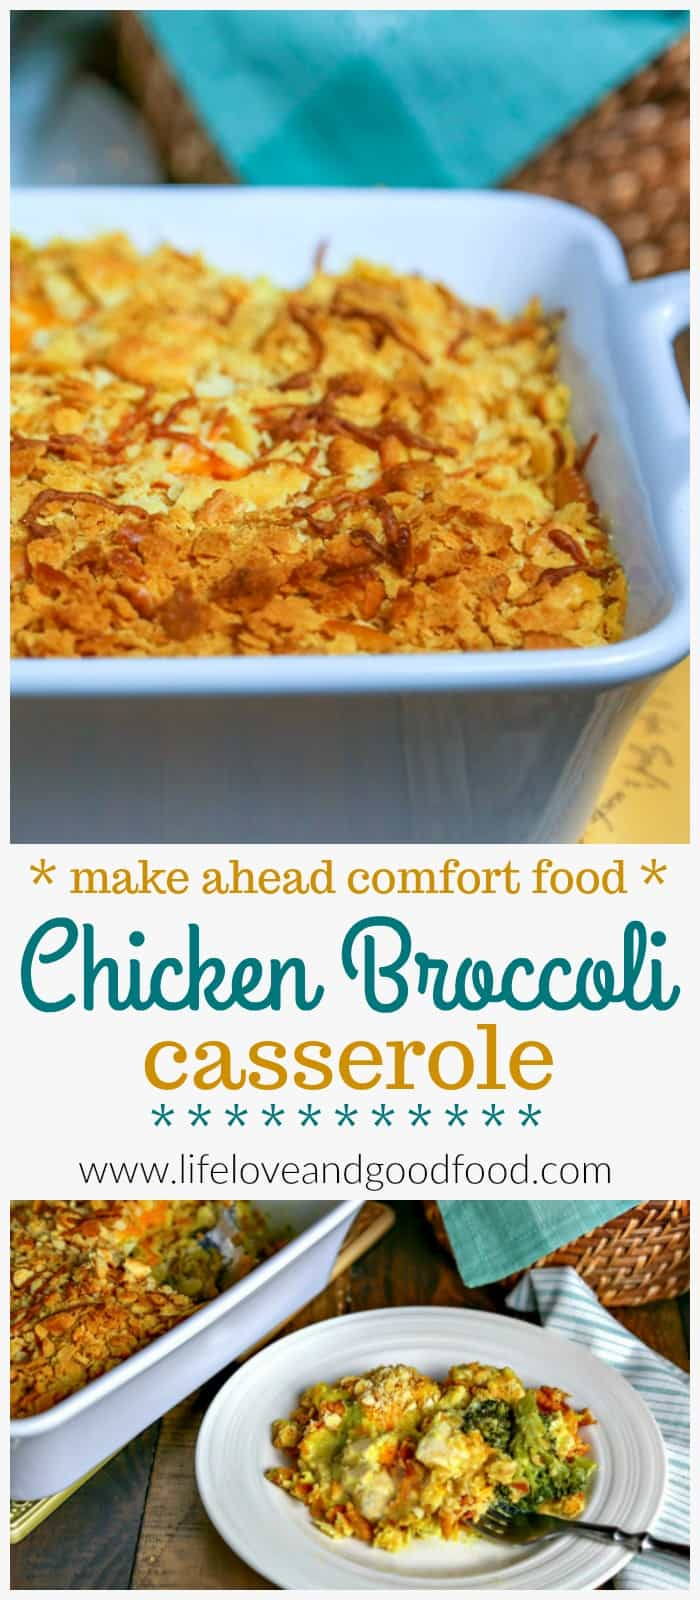 Chicken-Curry Broccoli Casserole. Curry powder and a little mayo added to the sauce in this chicken casserole blend together for an unexpected, but delicious flavor.